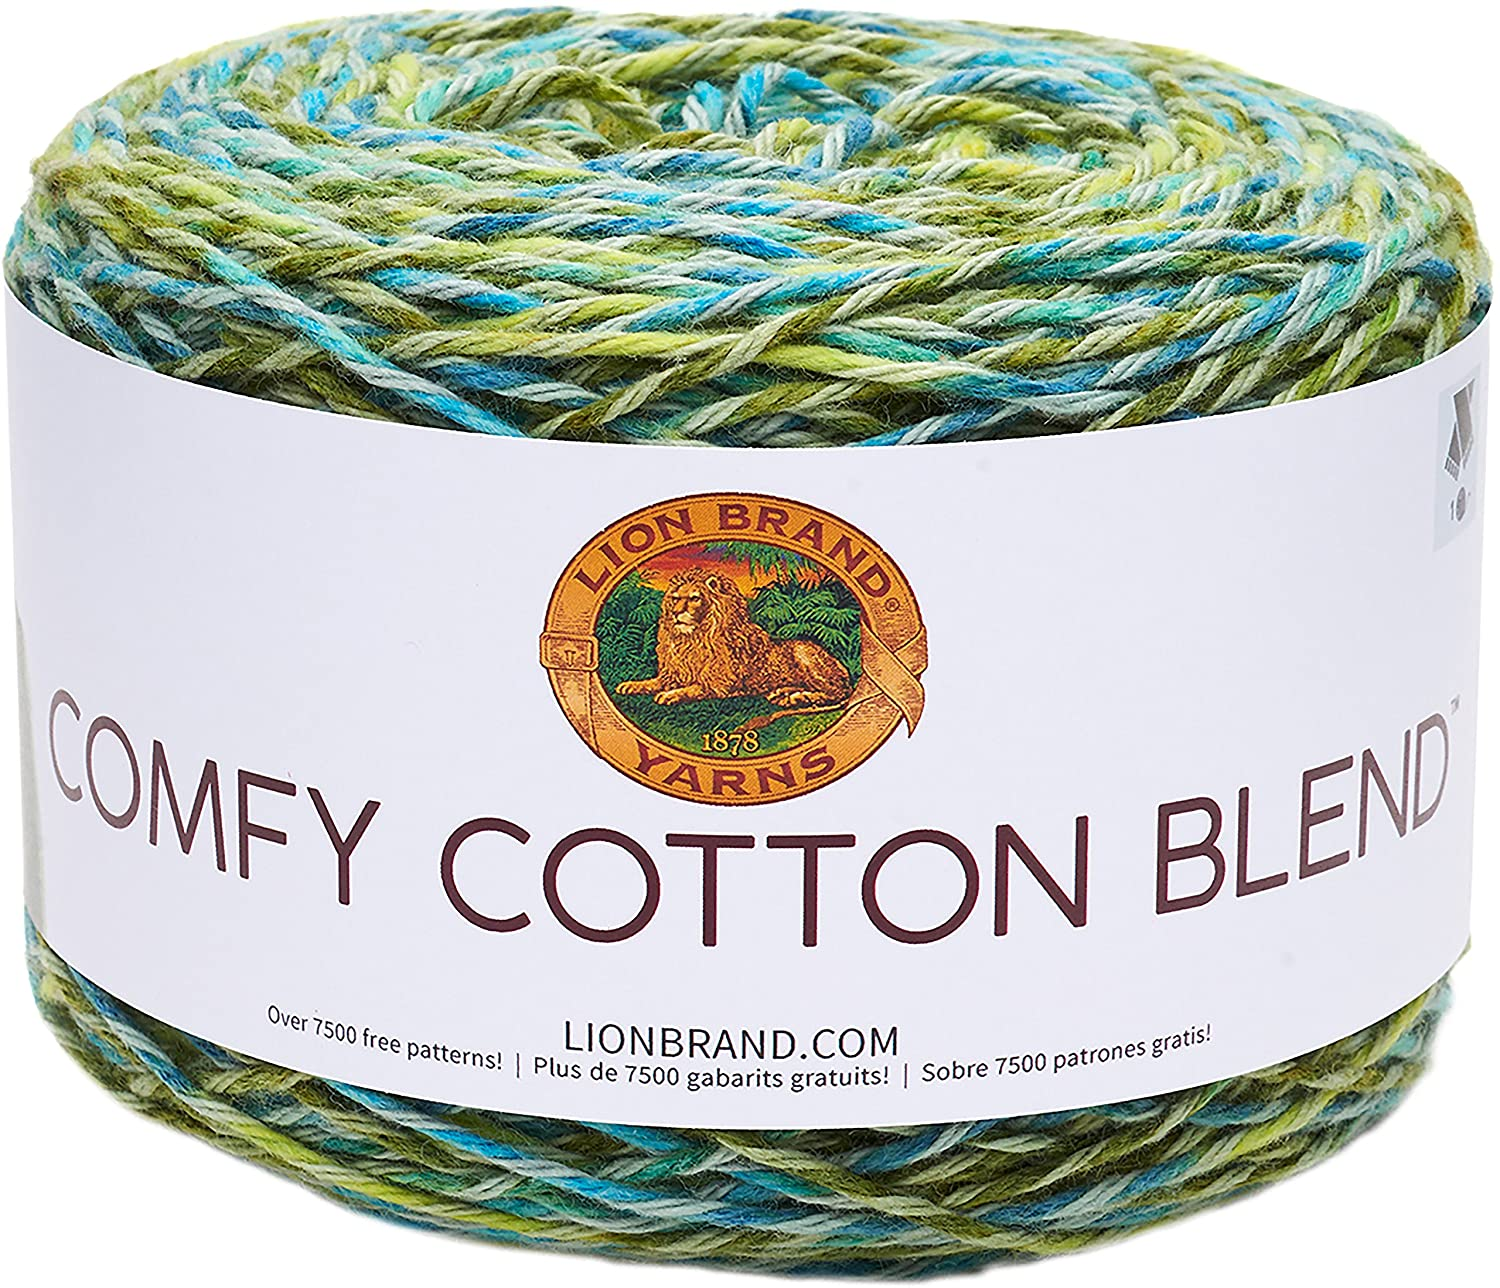 Lion Brand Yarn 756-704 Comfy Cotton Blend Yarn Stained Glass